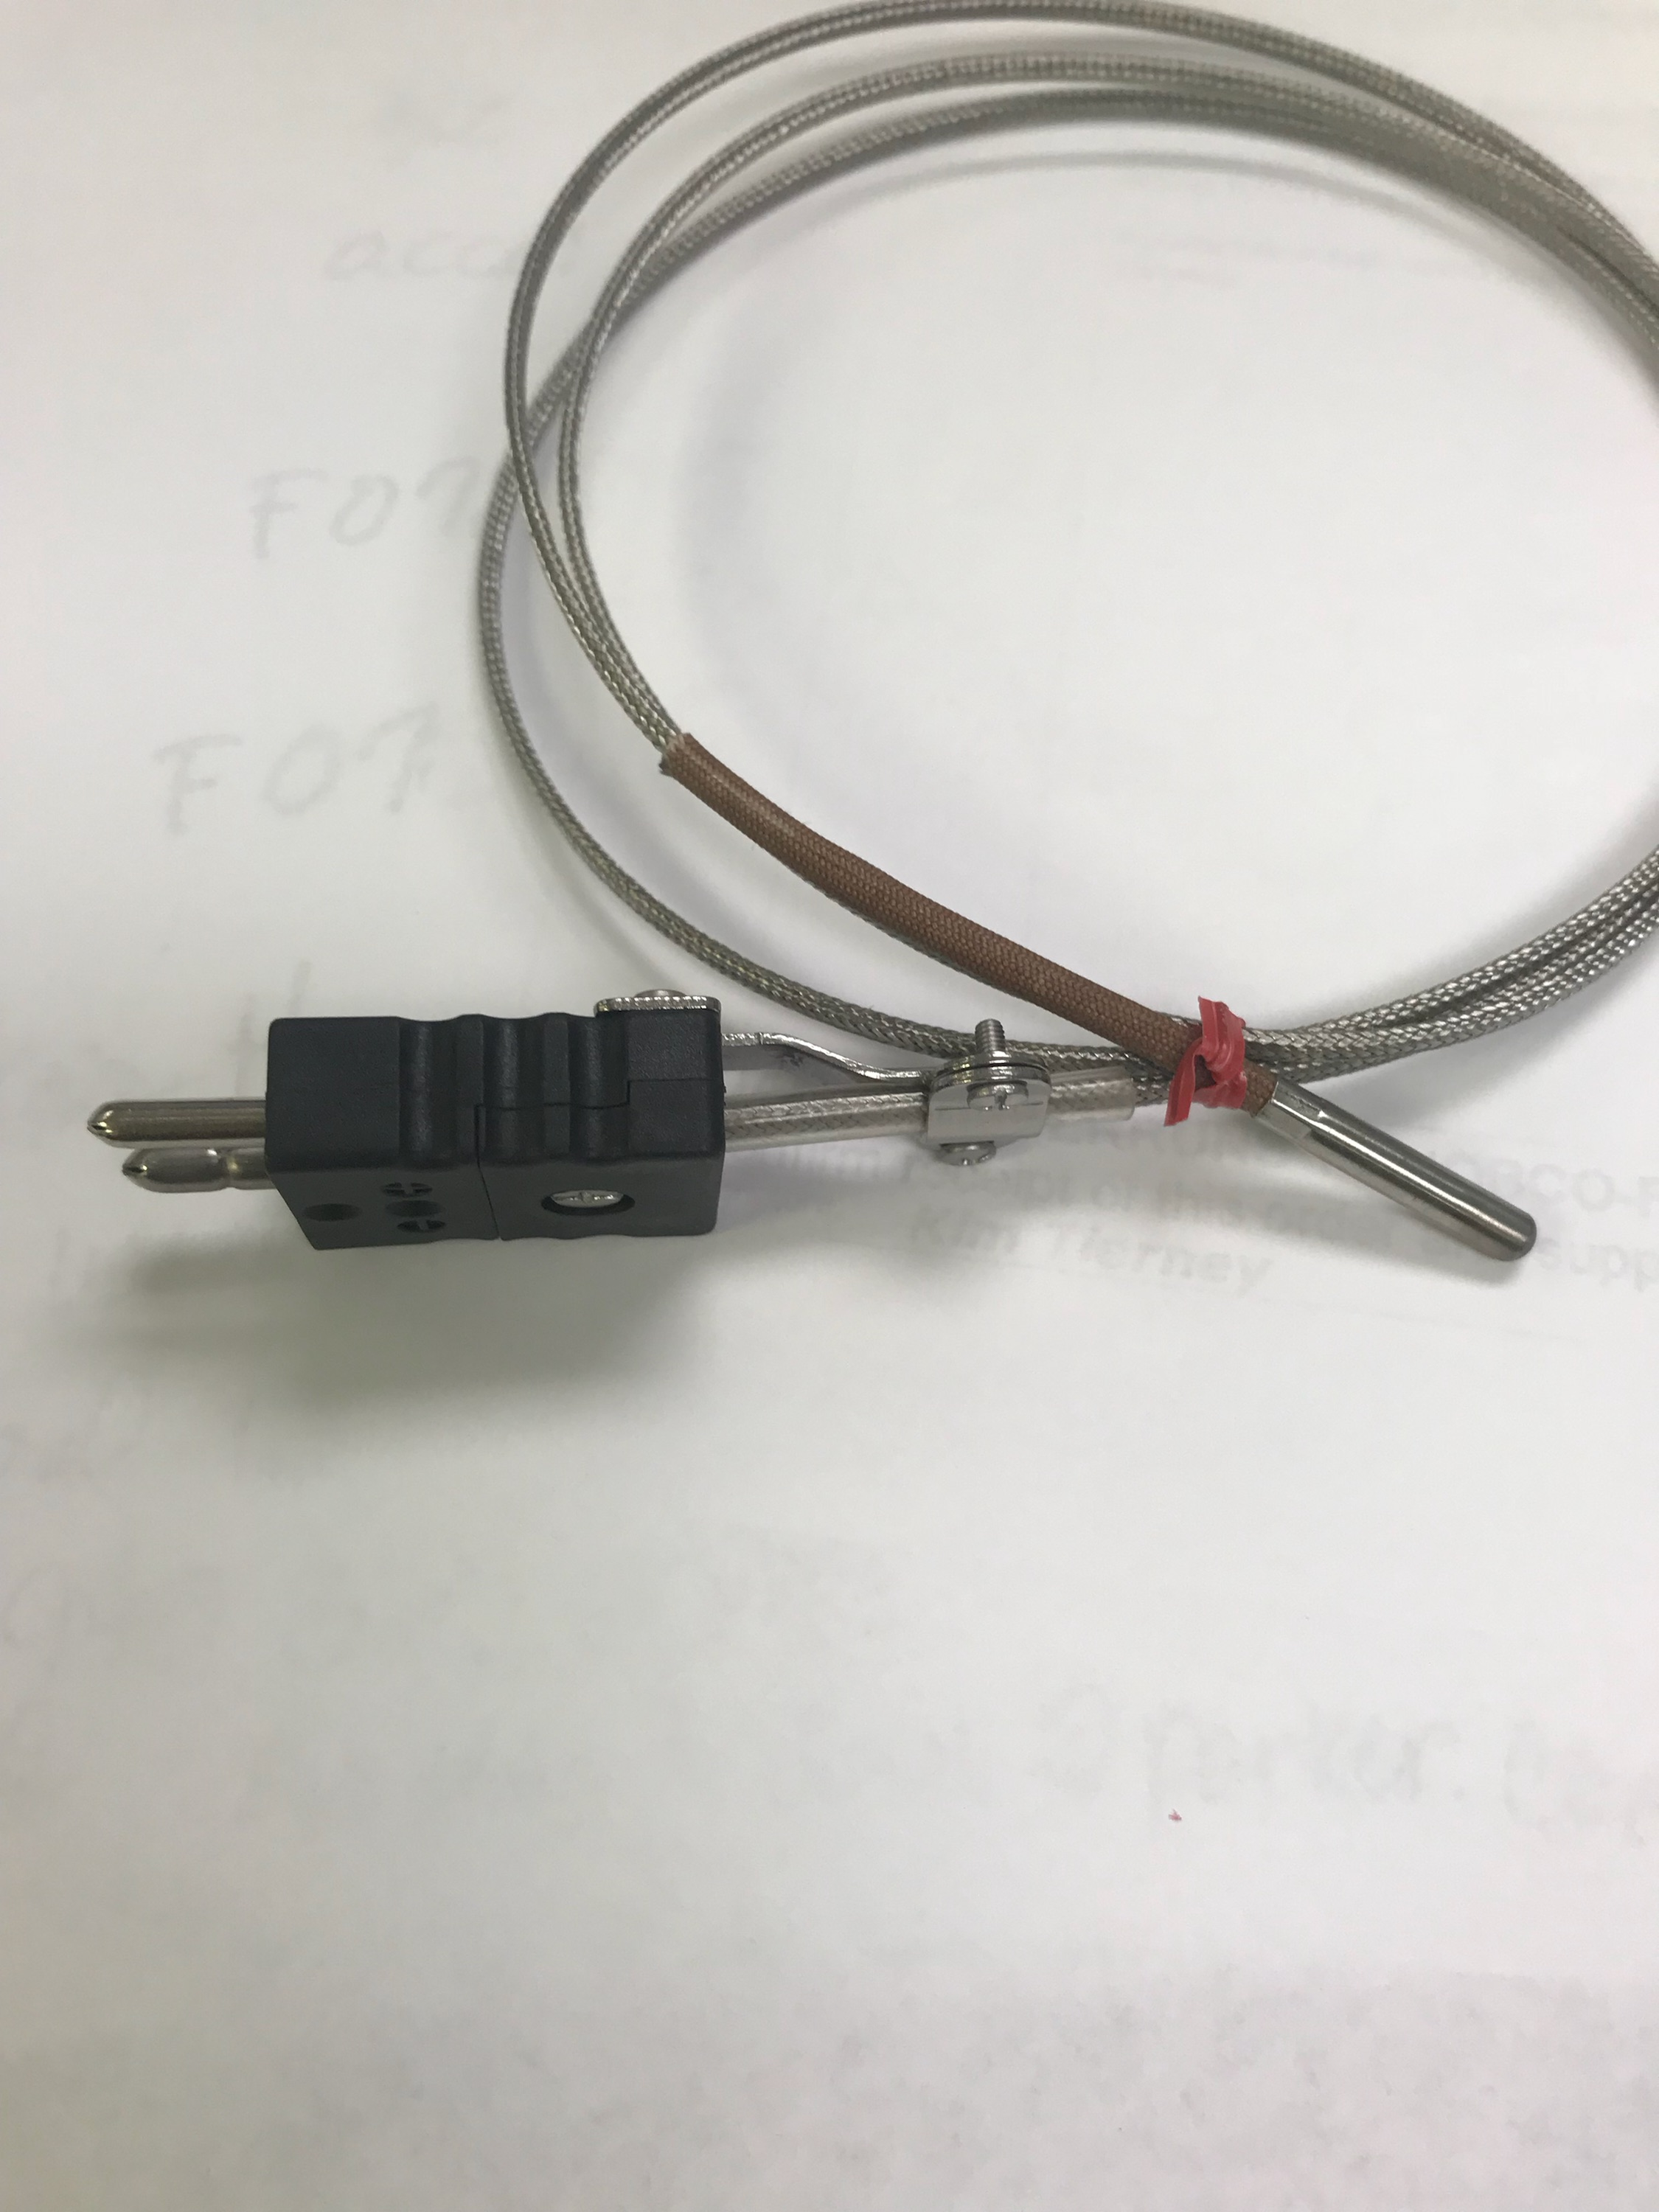 Thermocouple 25634 Two Pin Plug 48 inches long